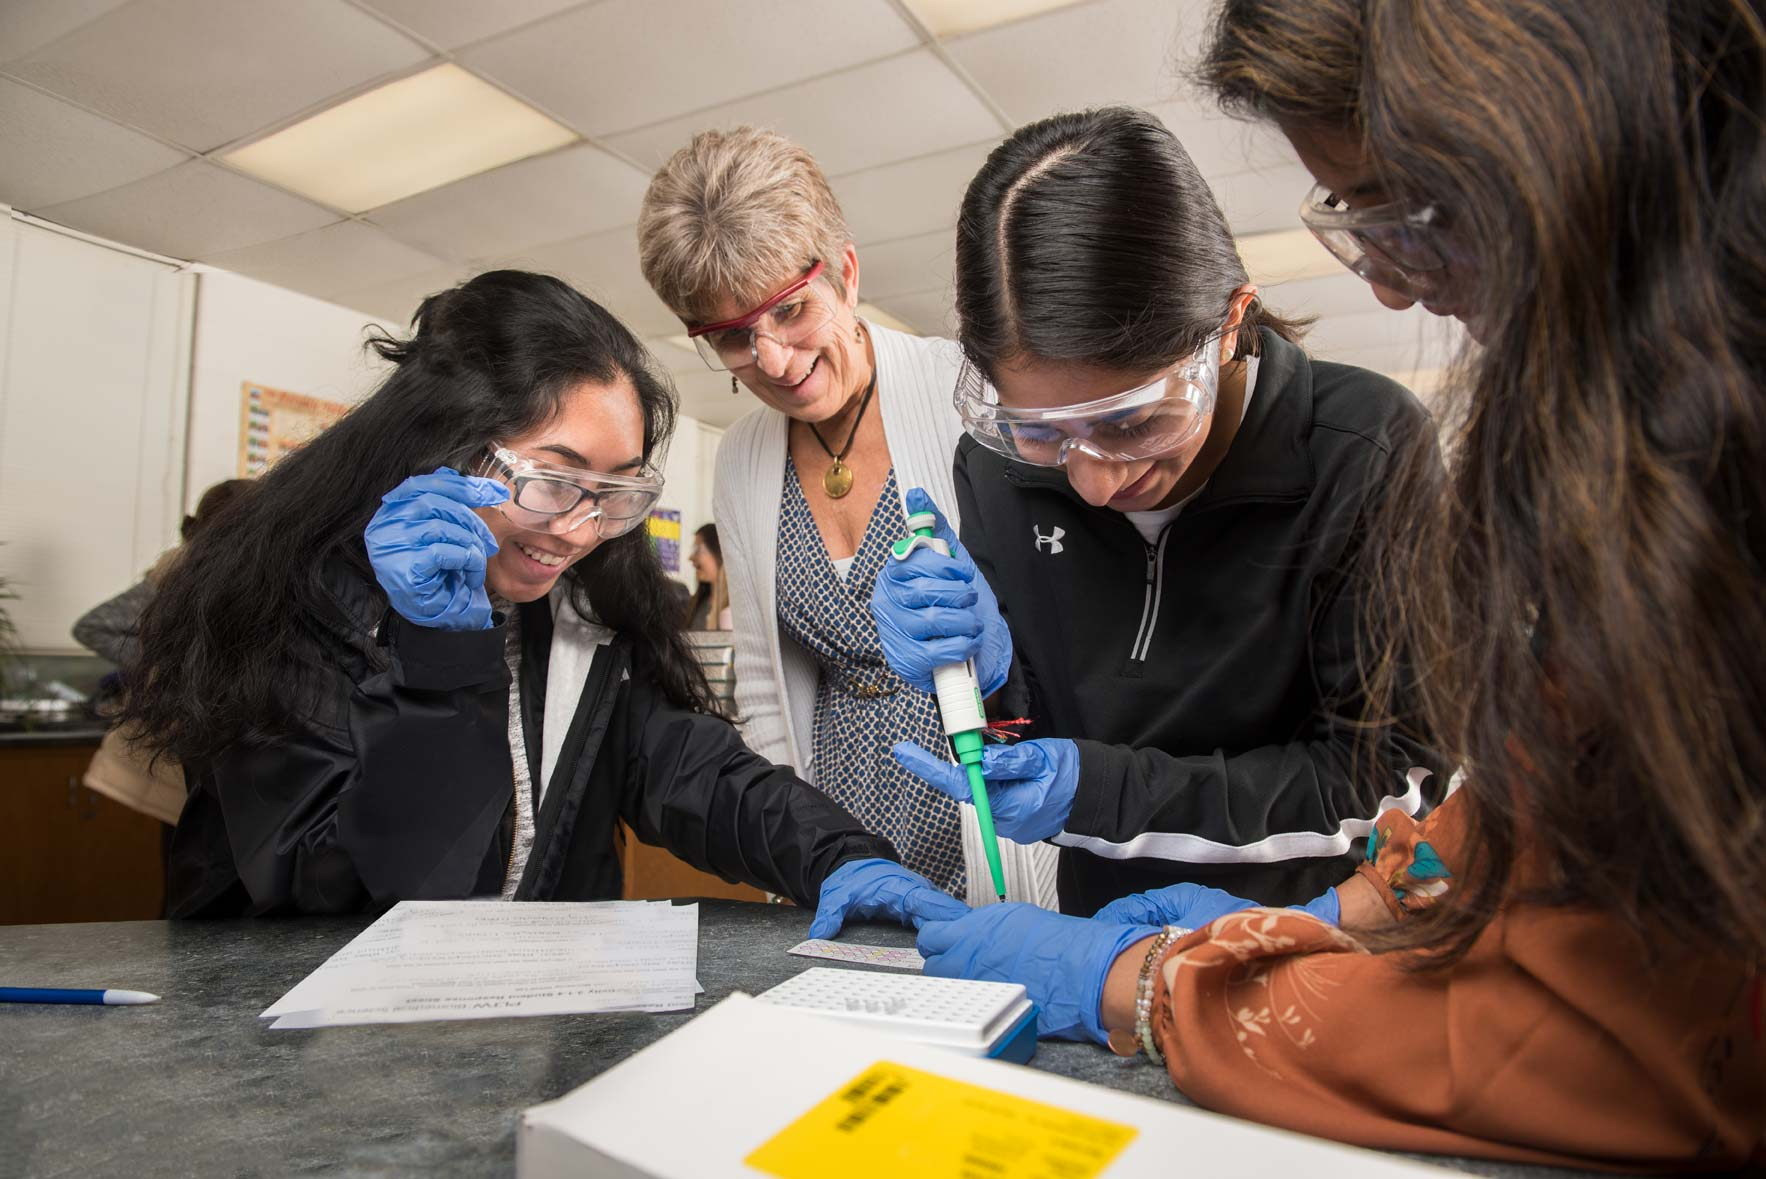 Easton High School ROP students work on a chemistry project as their teacher watches